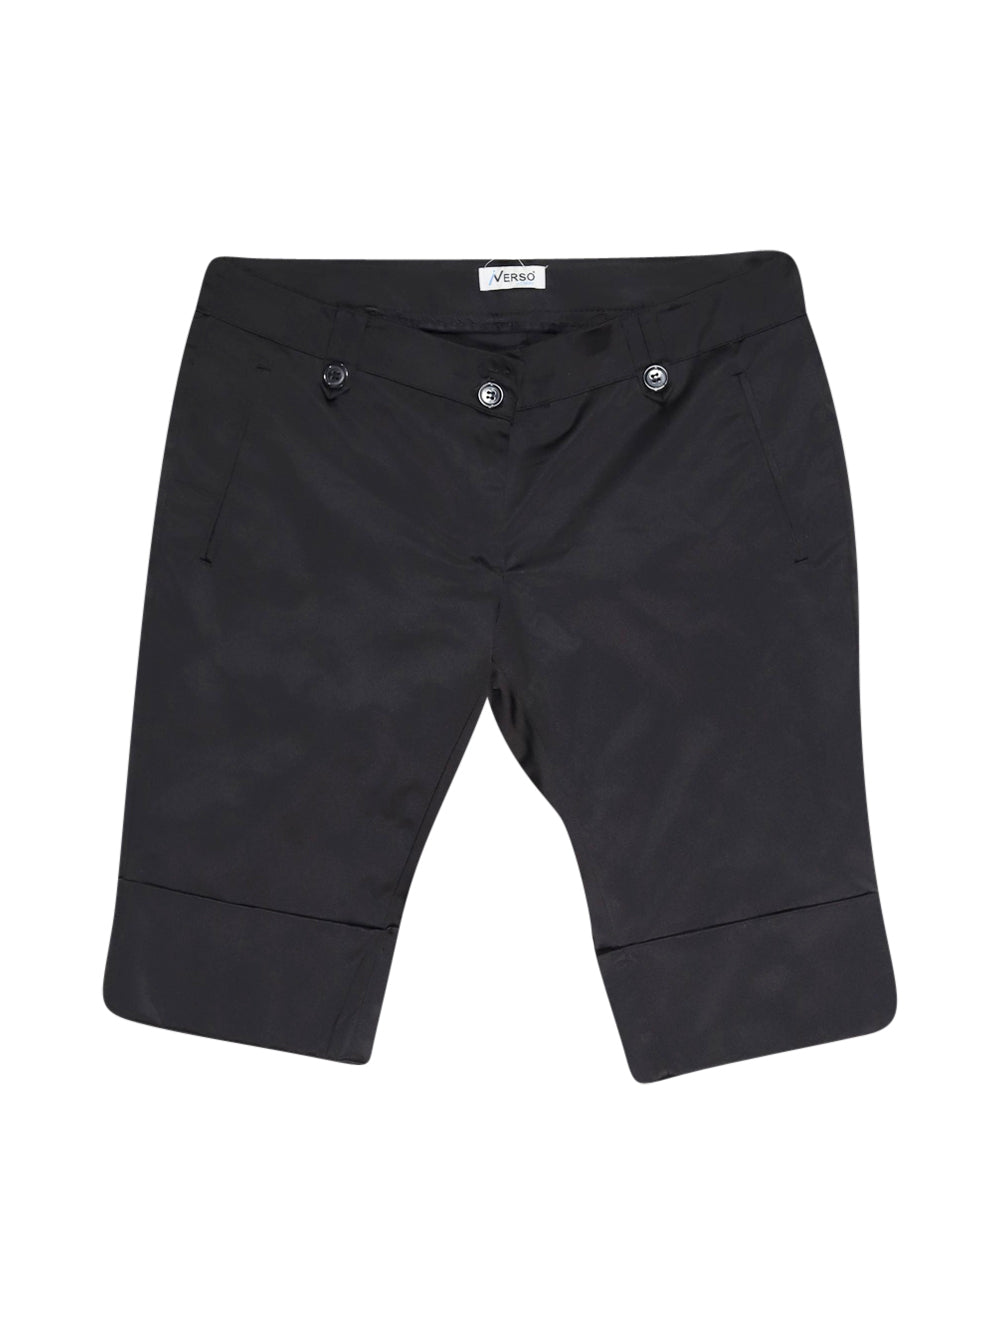 Front photo of Preloved verso Woman Black Woman's shorts - size 14/XL